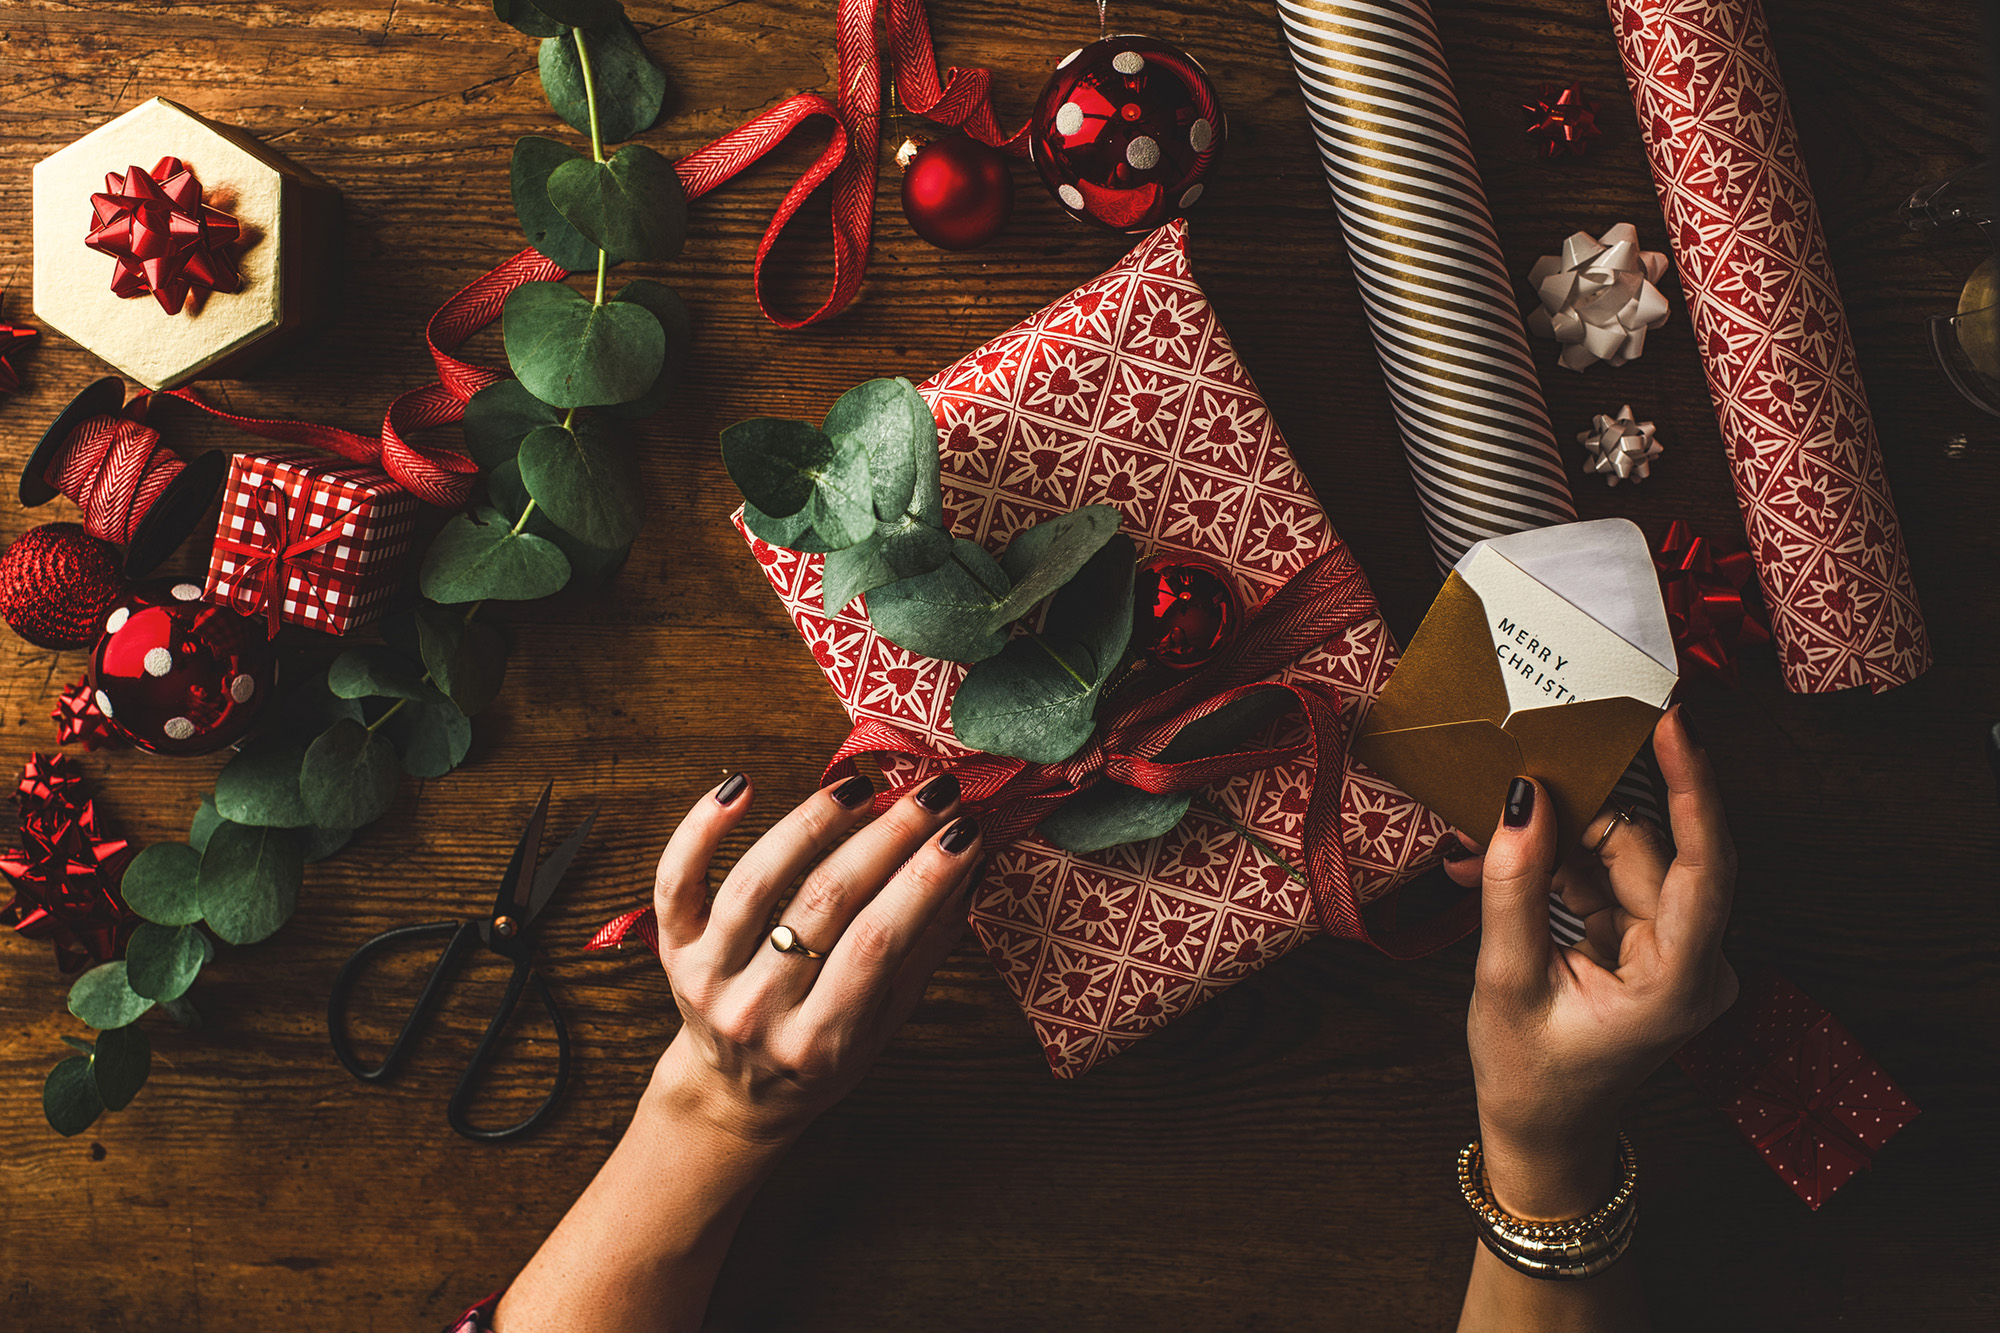 6 essential items every college student needs on their holiday wish list